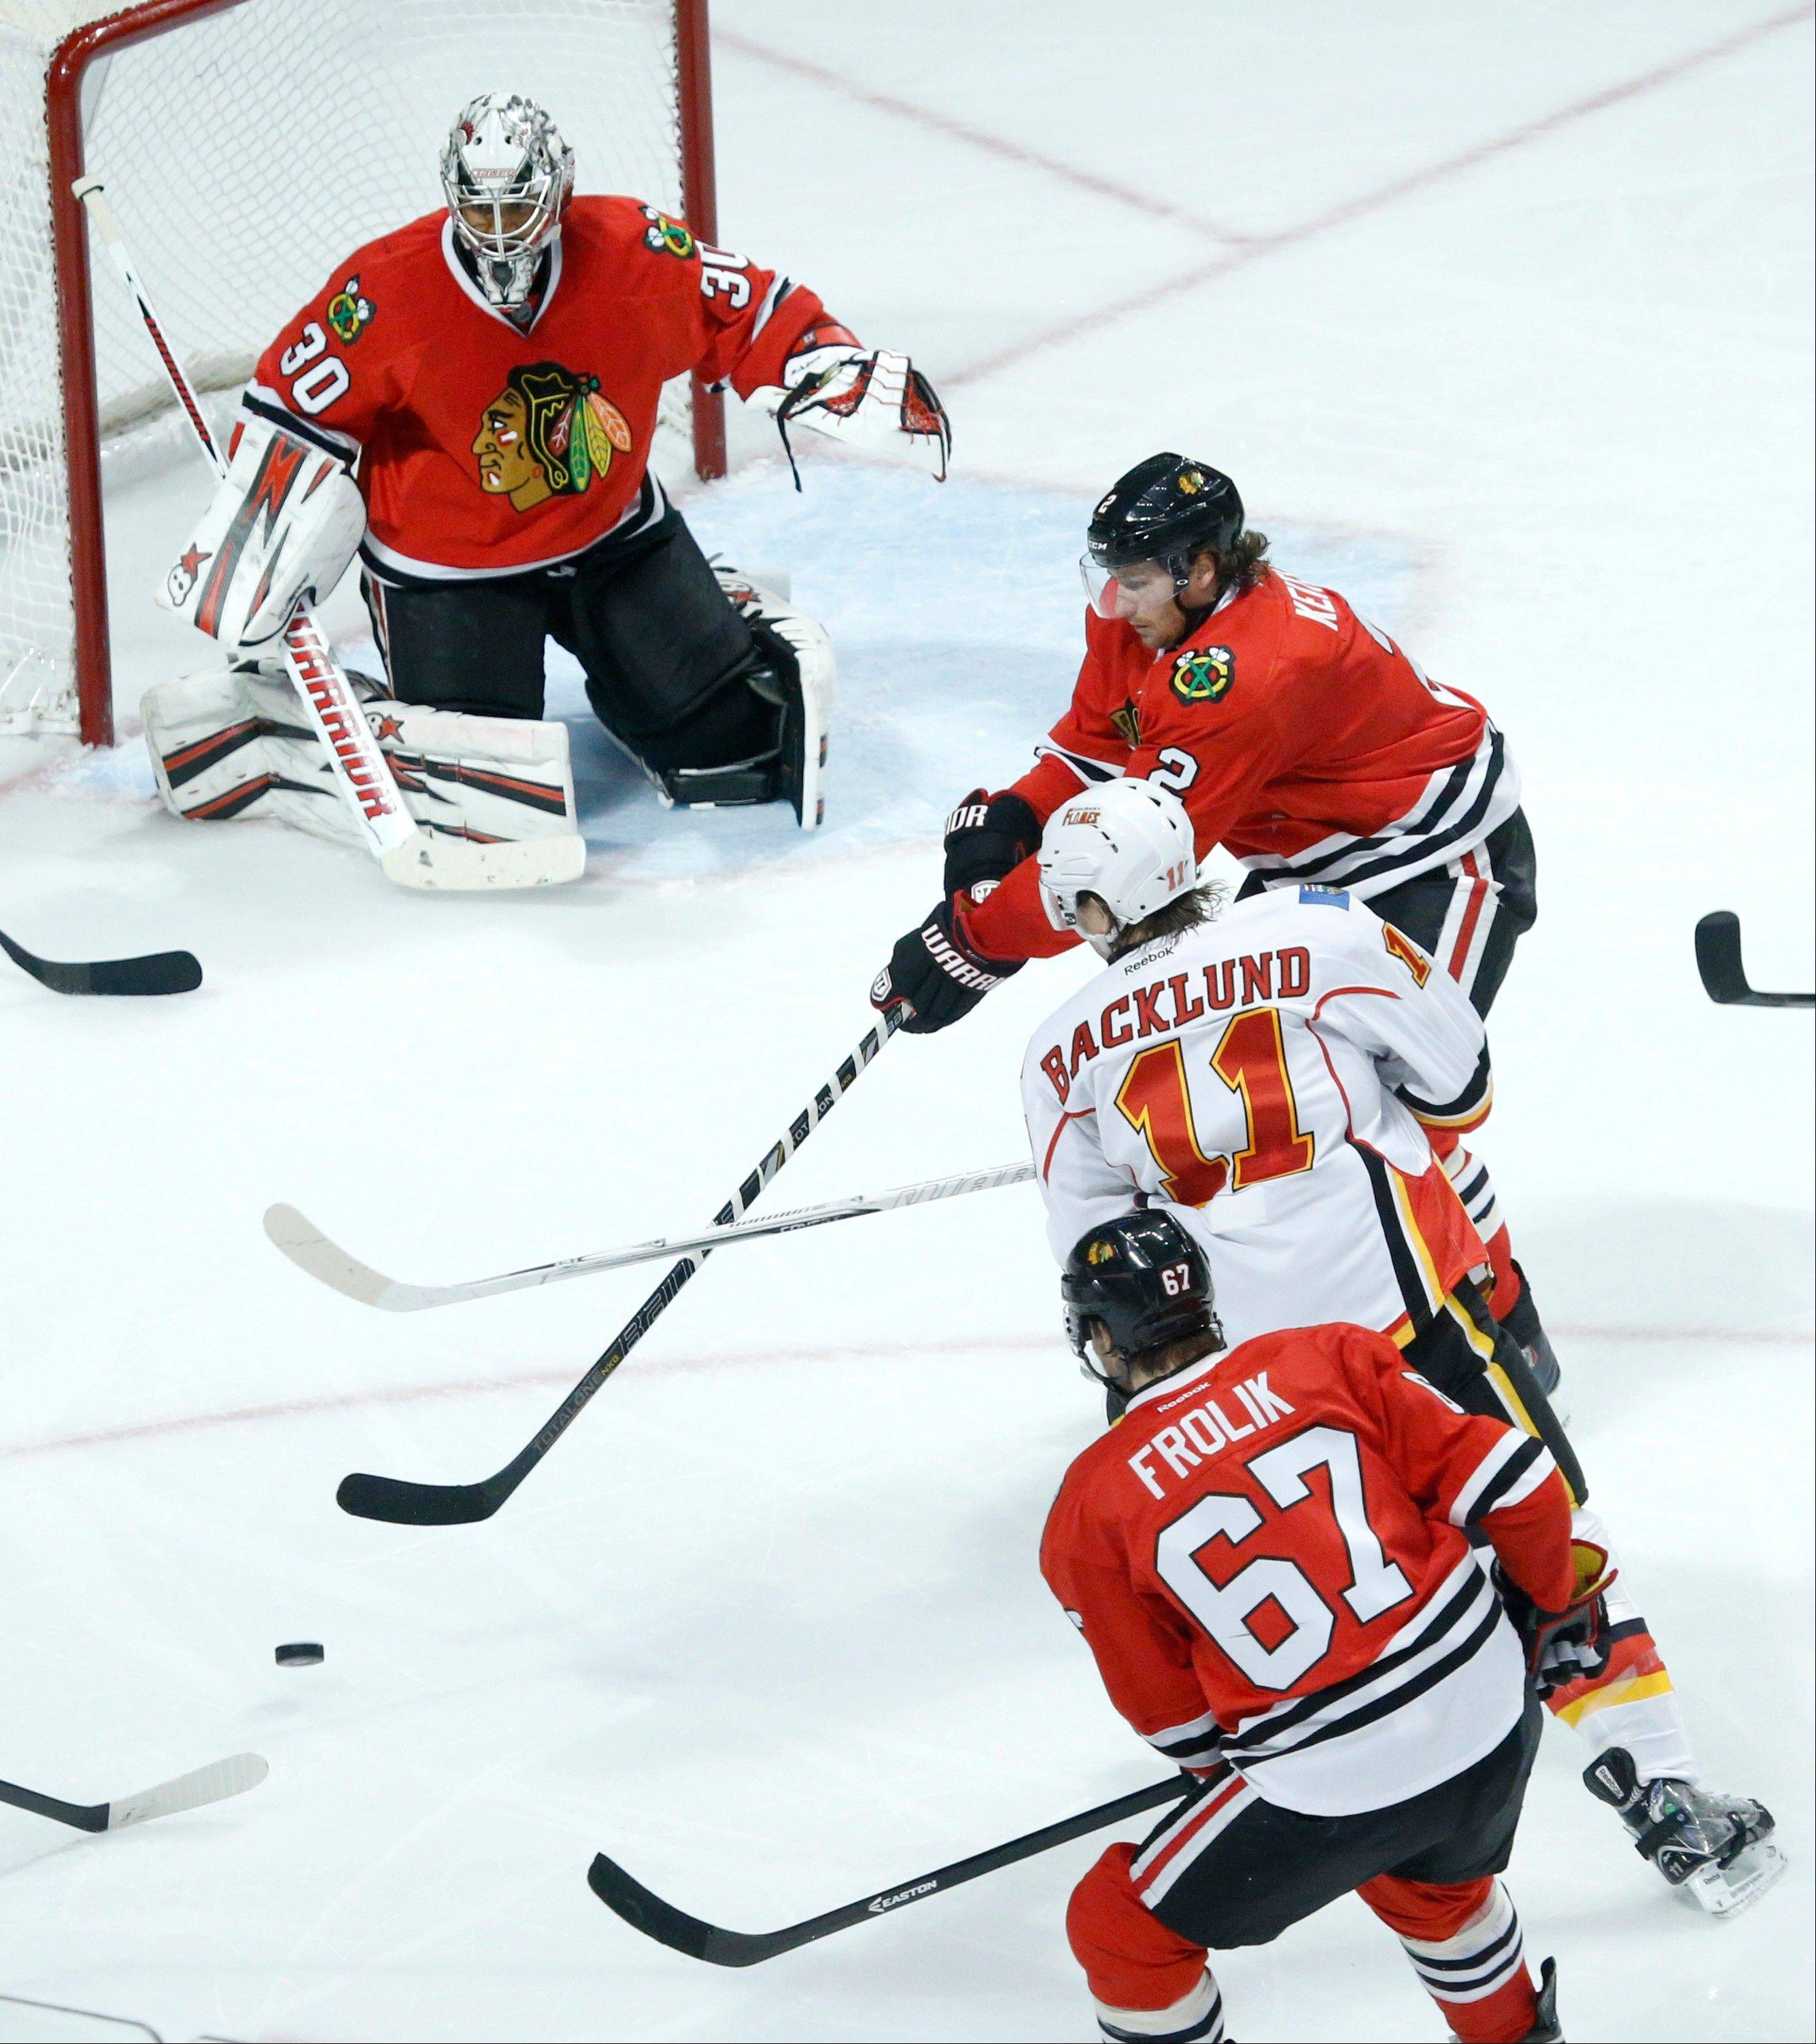 Blackhawks defenseman Duncan Keith (2) keeps Calgary Flames center Mikael Backlund, from Sweden, from getting a shot on goal as center Michael Frolik (67), from the Czech Republic, and goalie Ray Emery watch during the Blackhawks victory over the Flames Tuesday night at the United Center.